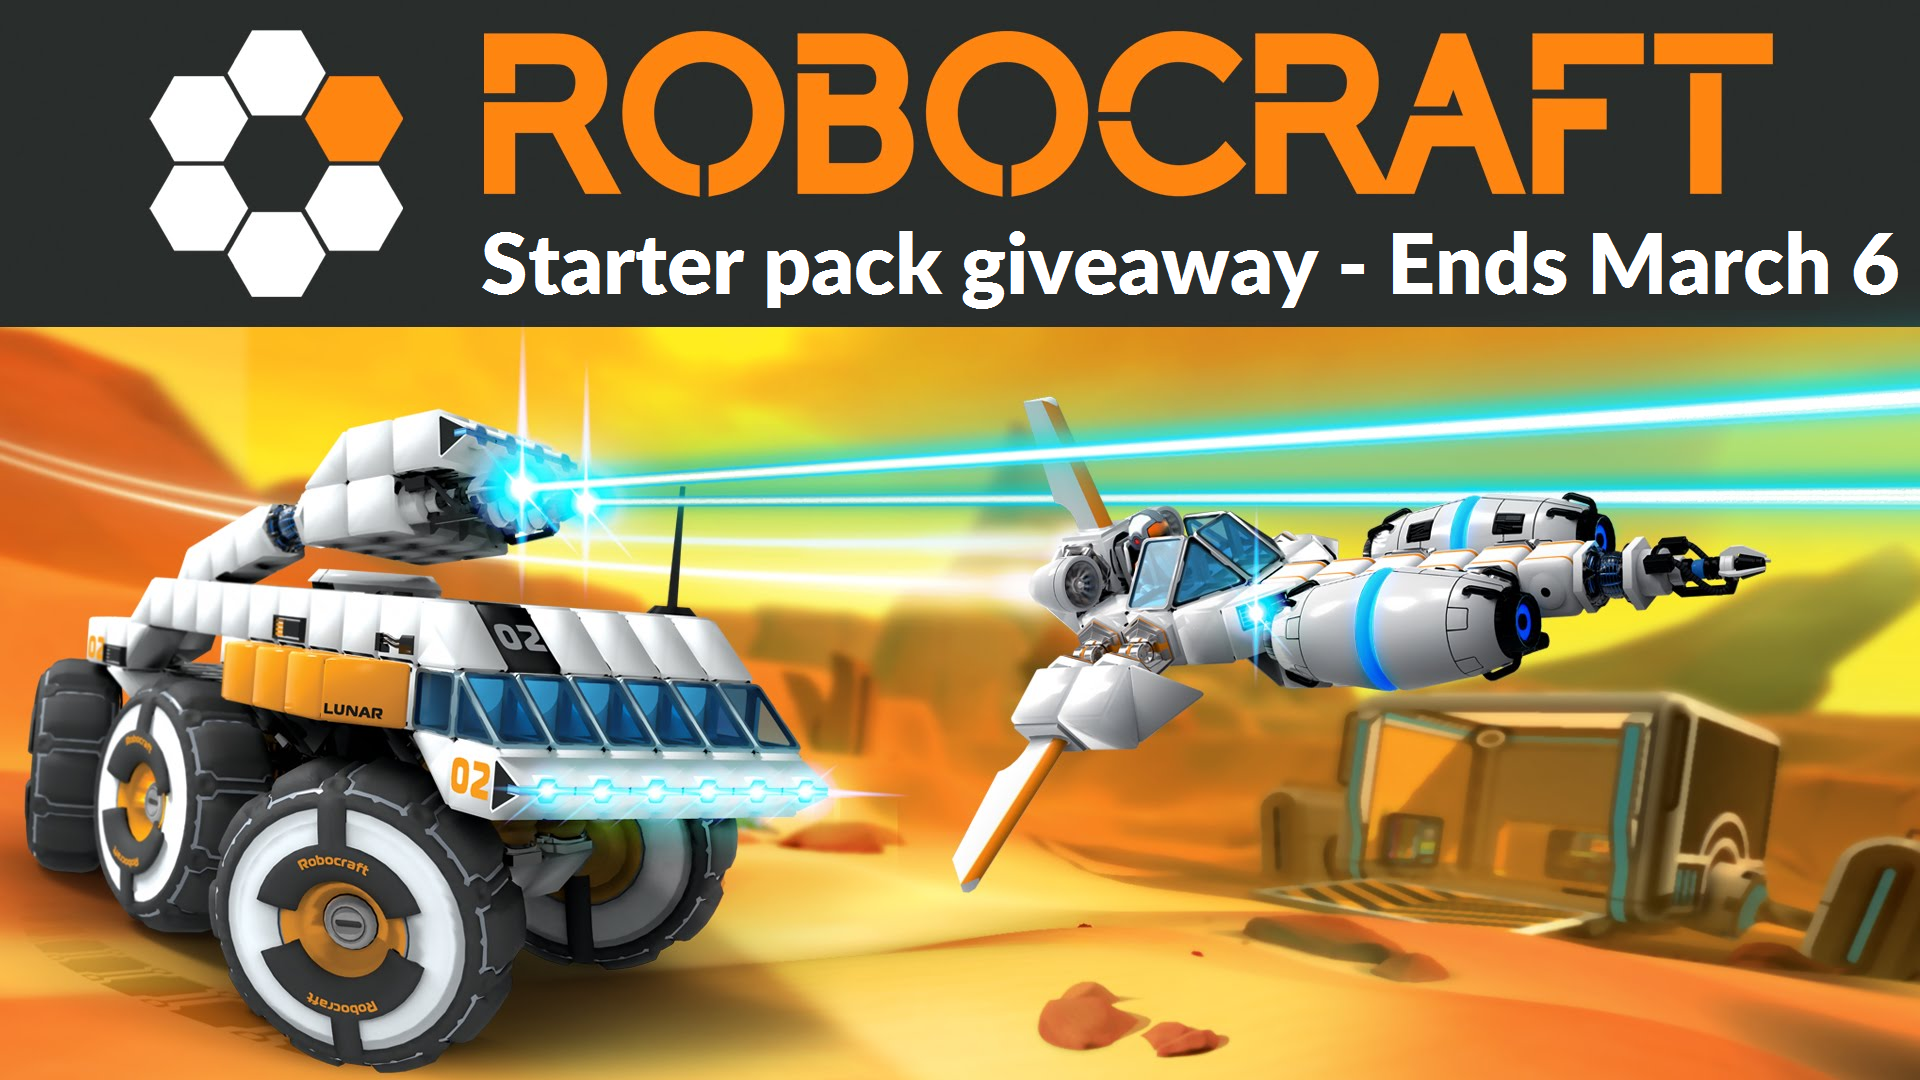 Robocraft giveaway! Win one of 10,000 starter packs for this mech building game!